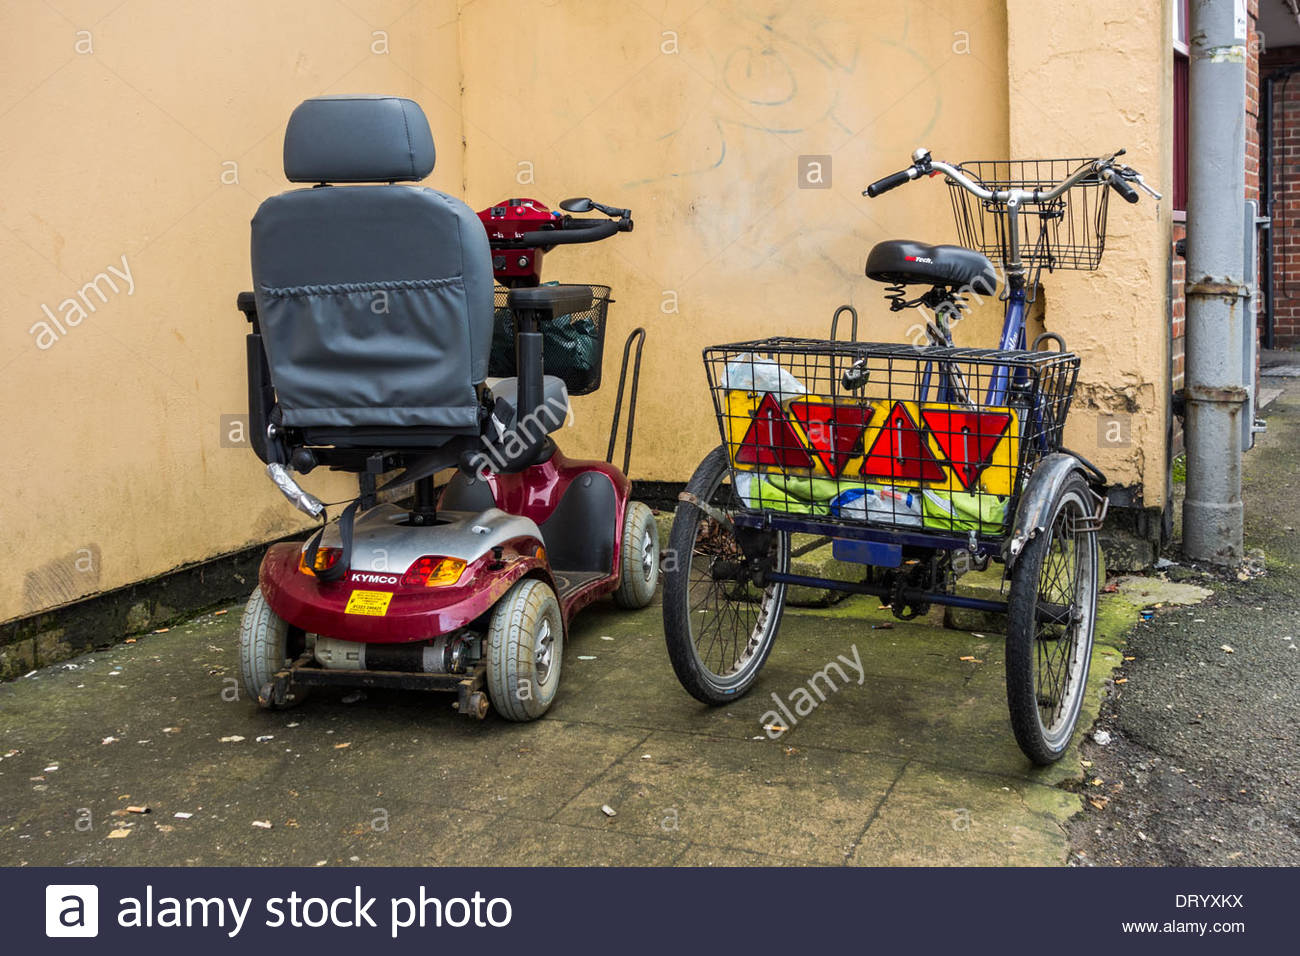 Mobility scooter and tricycle parked next to each other - Stock Image